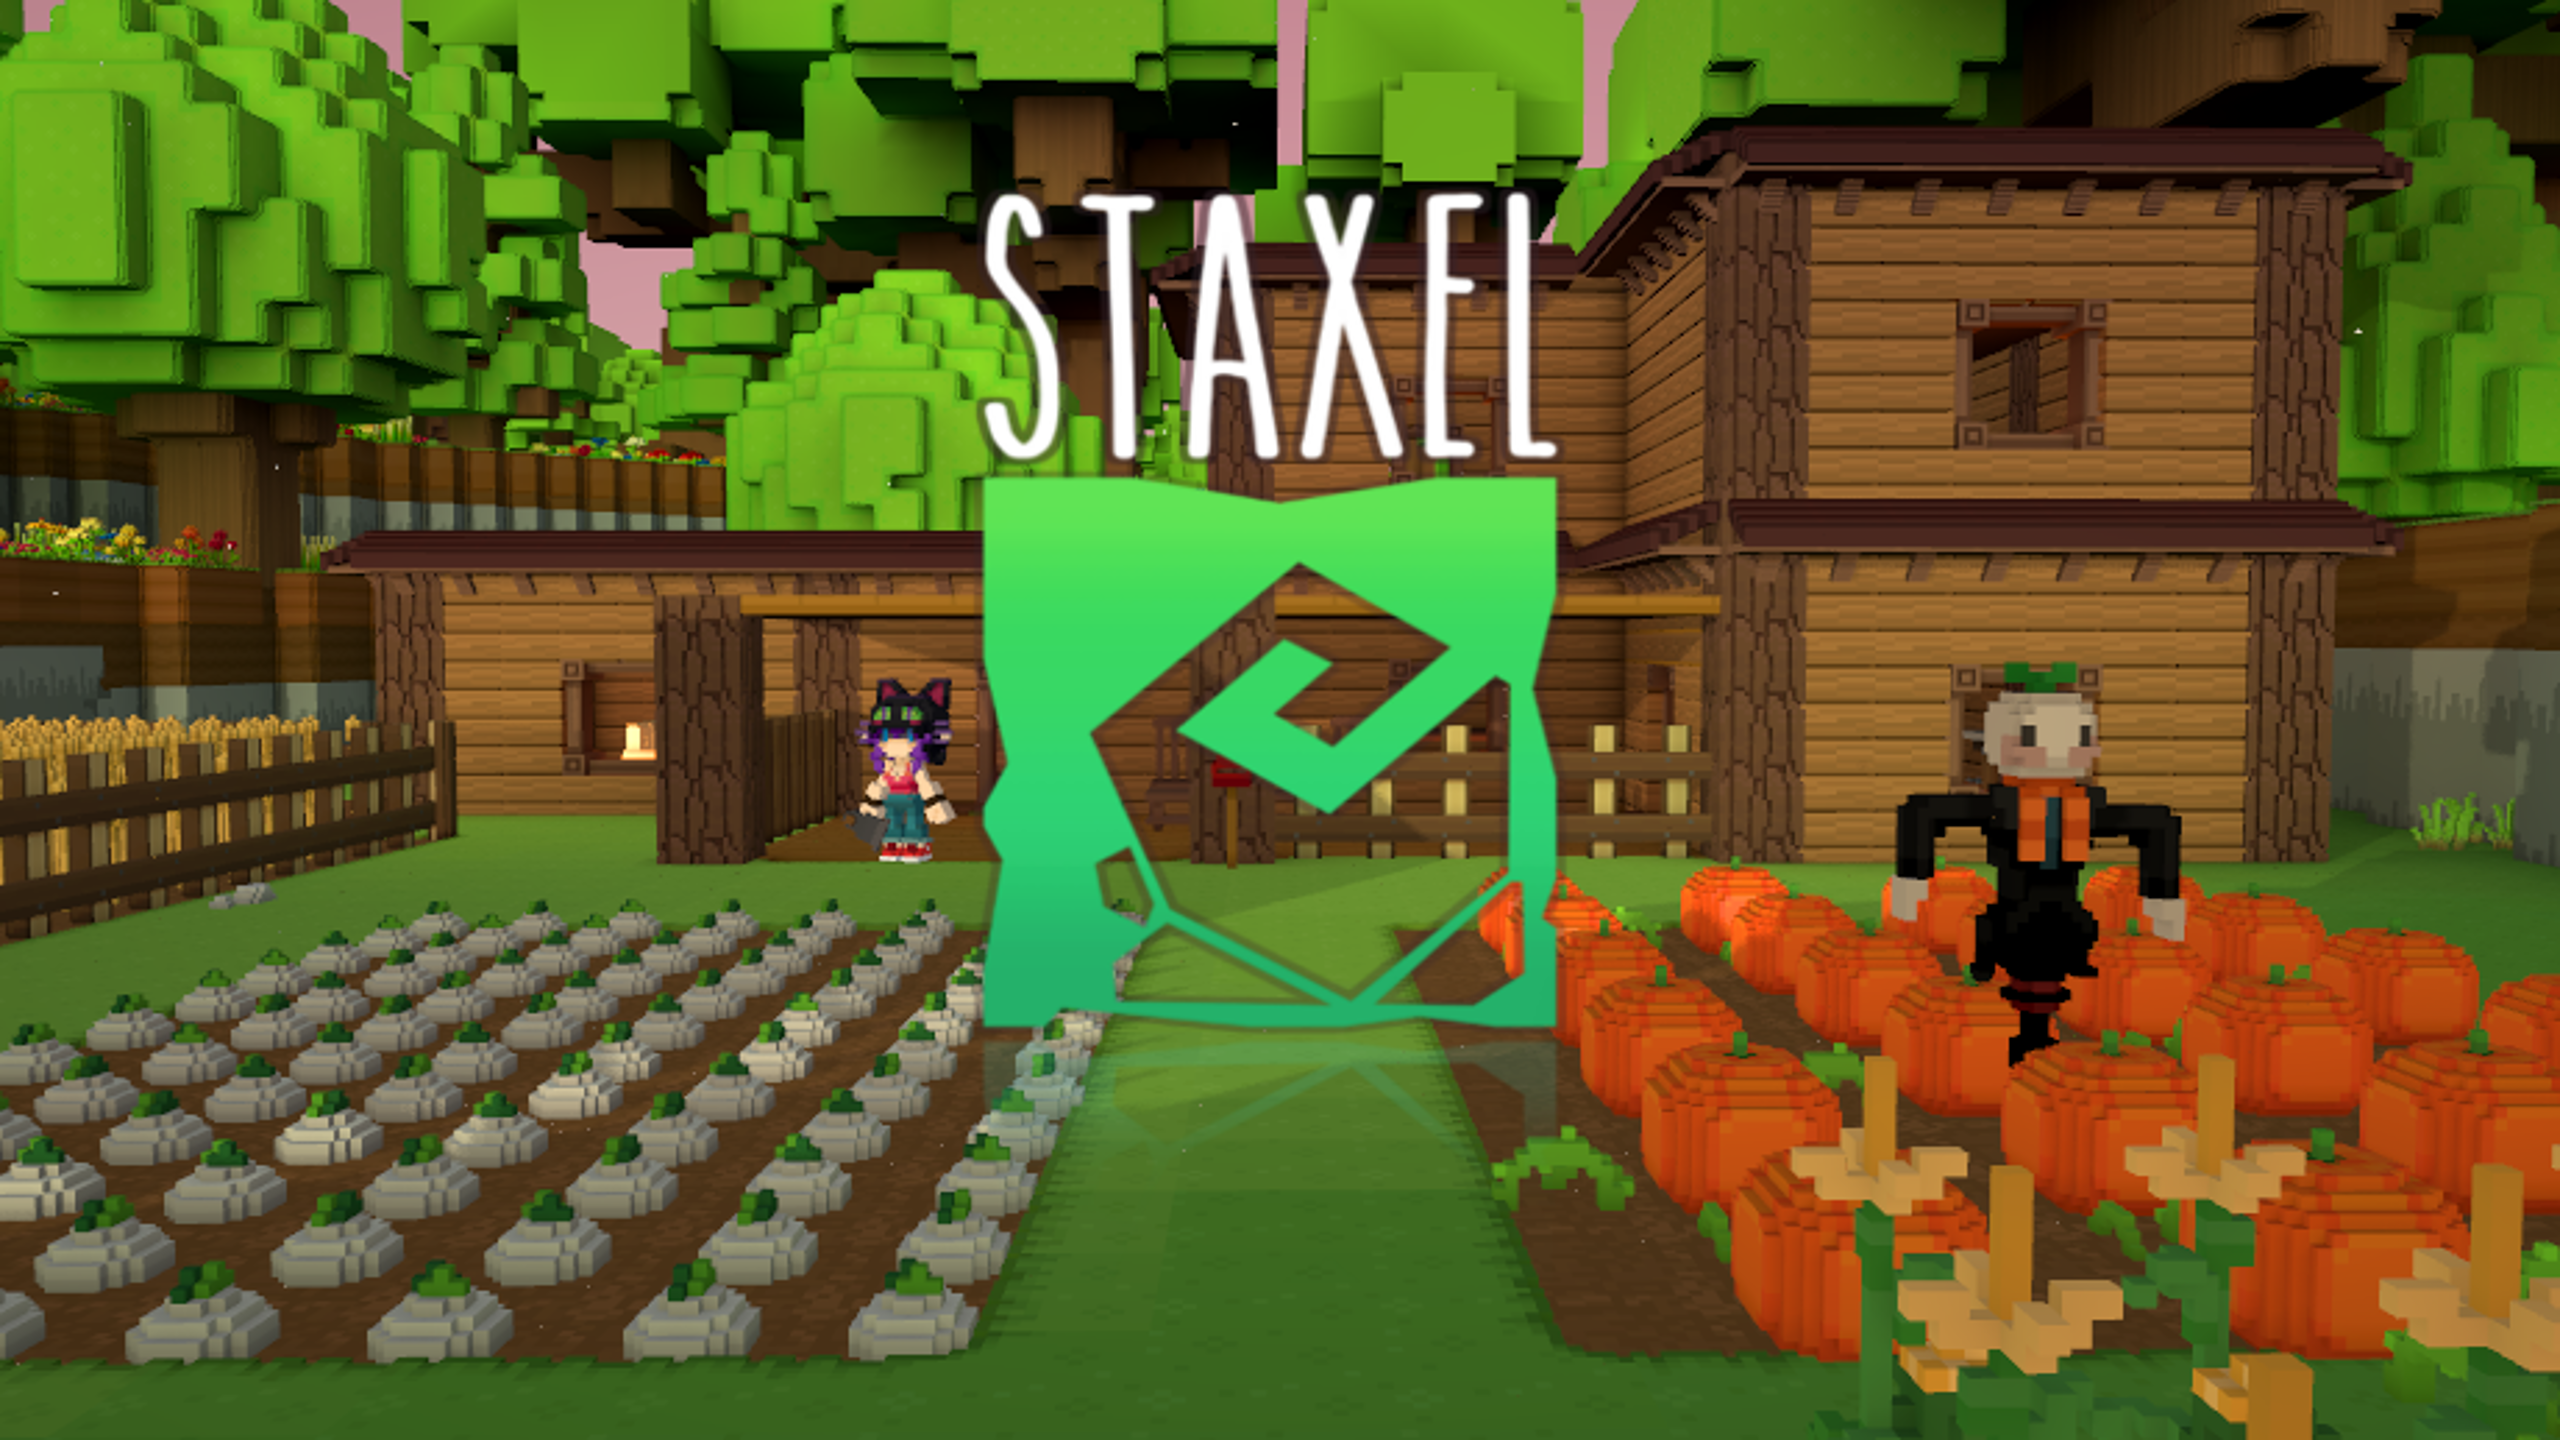 staxel-free-download-4333093